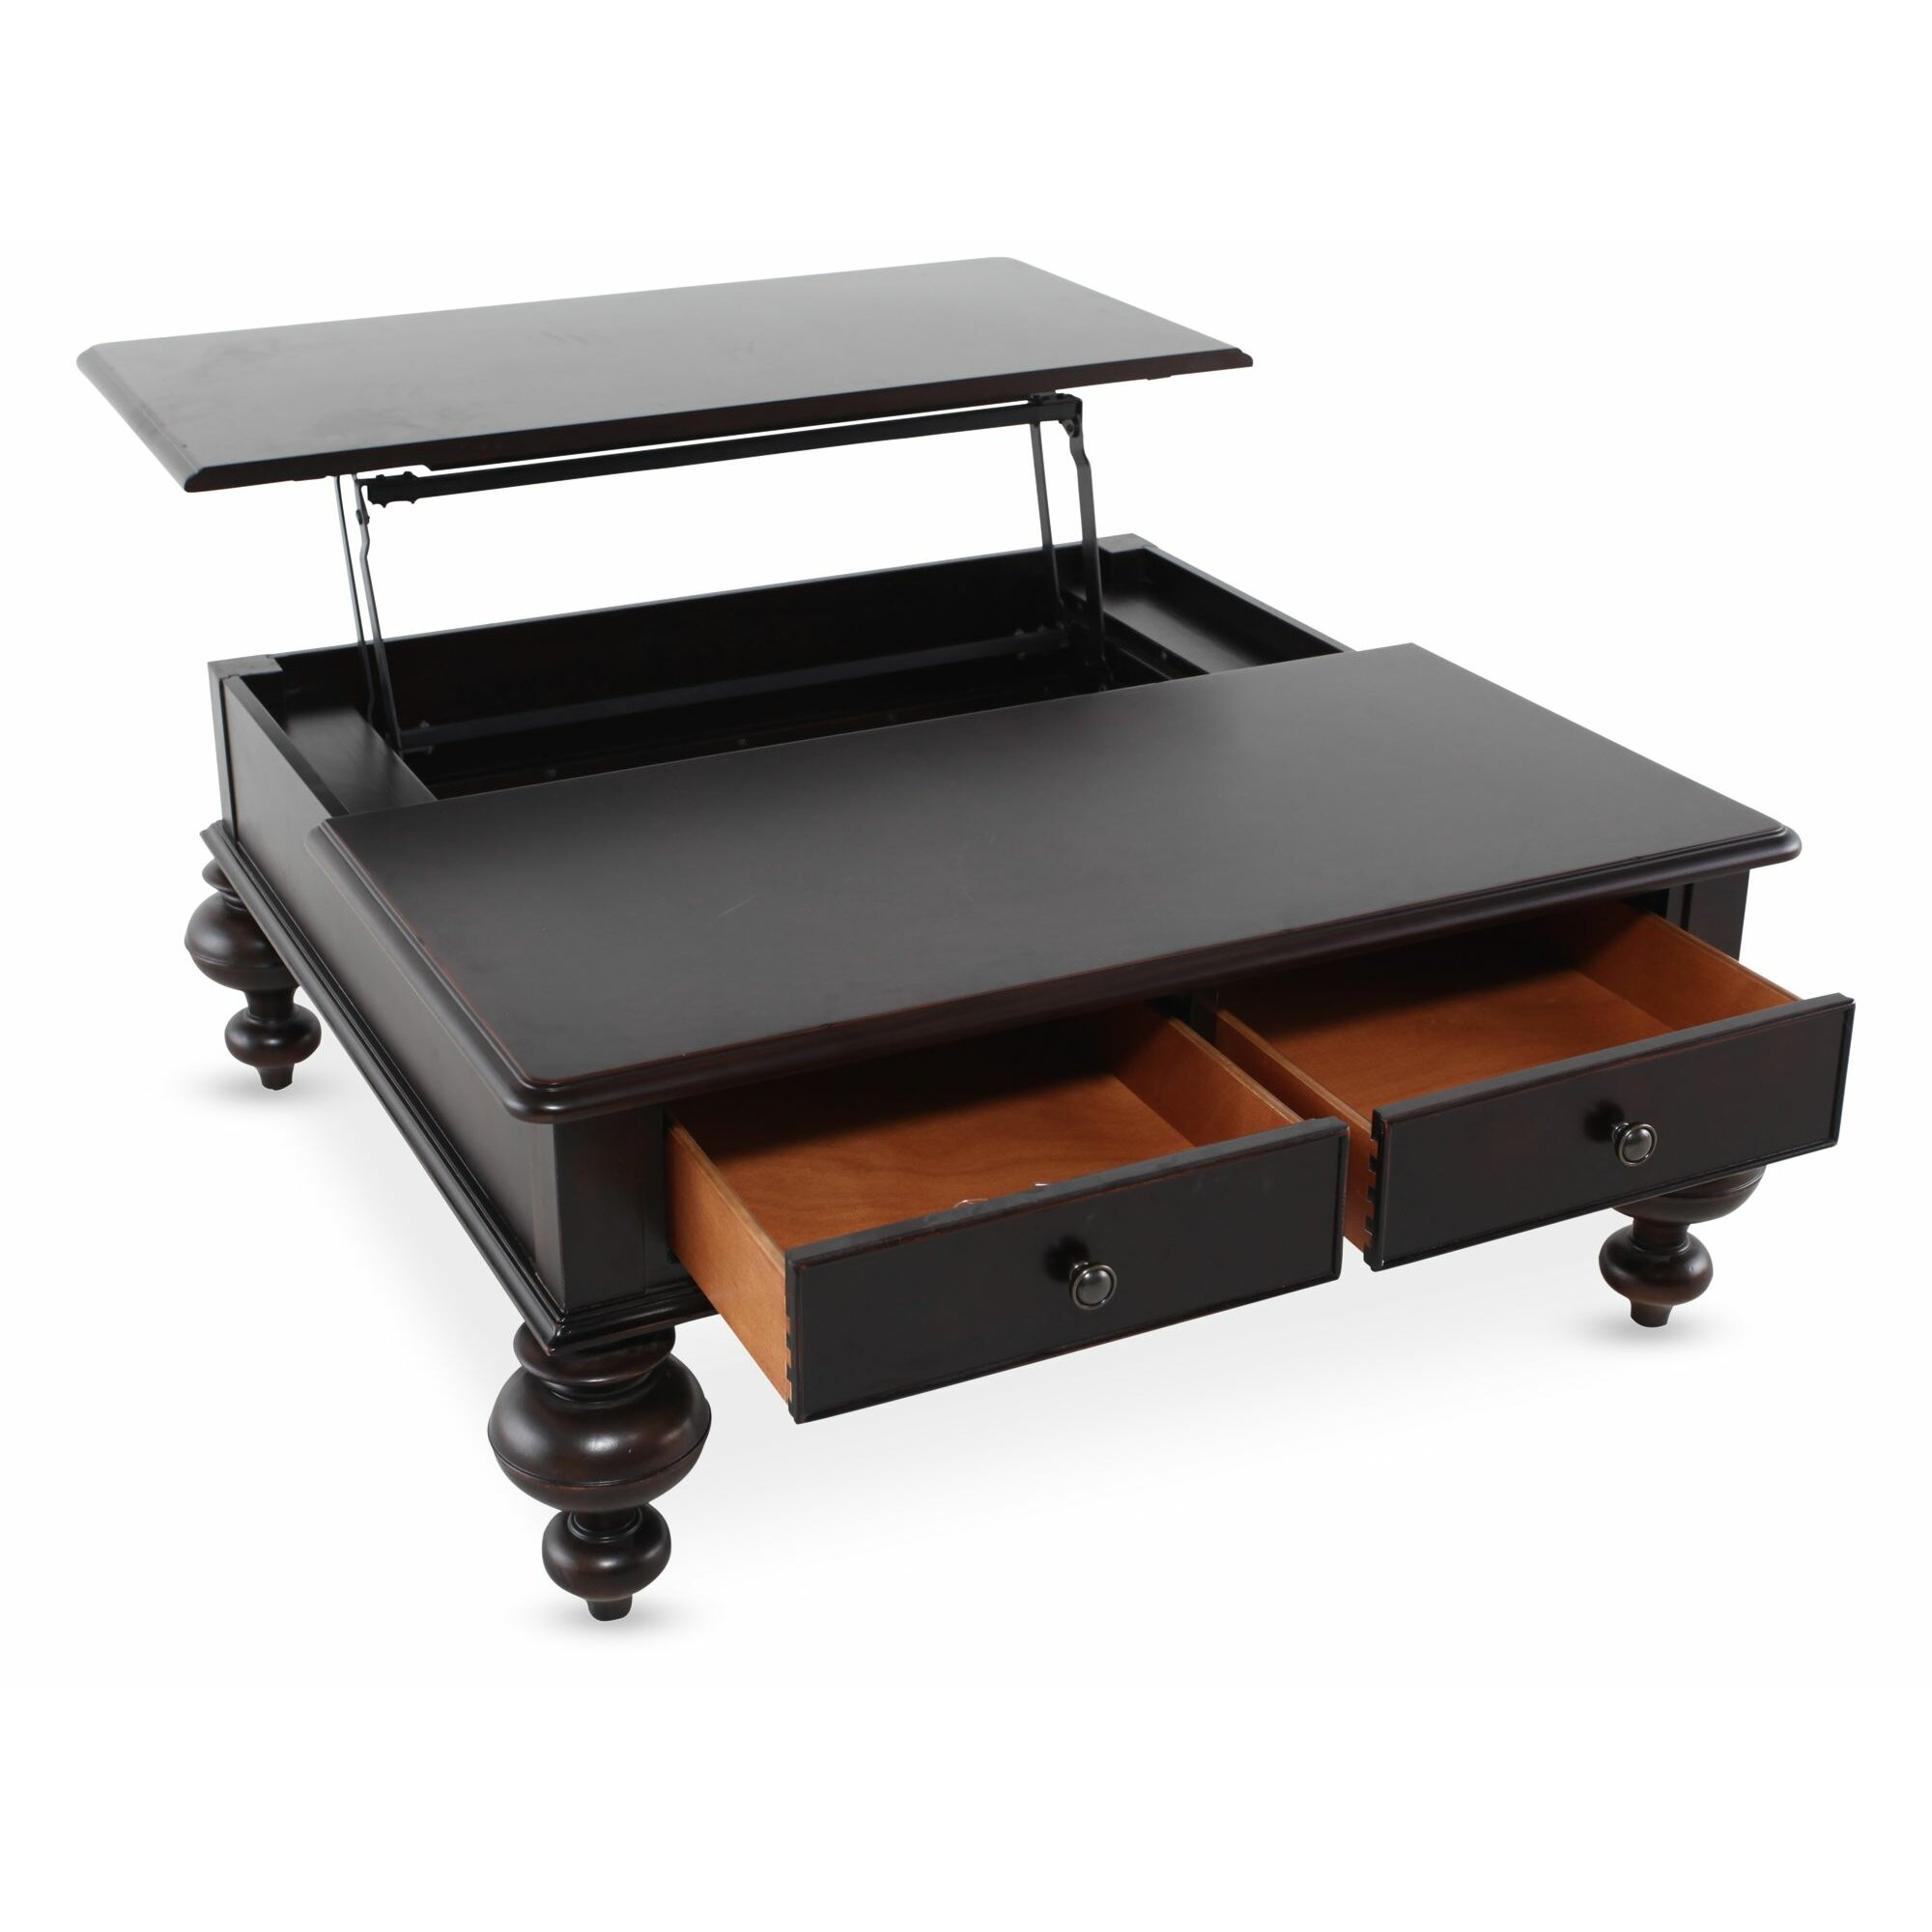 Paula Deen Home Paula Deen Home Put Your Feet Up Coffee Table With Lift Top Reviews Wayfair